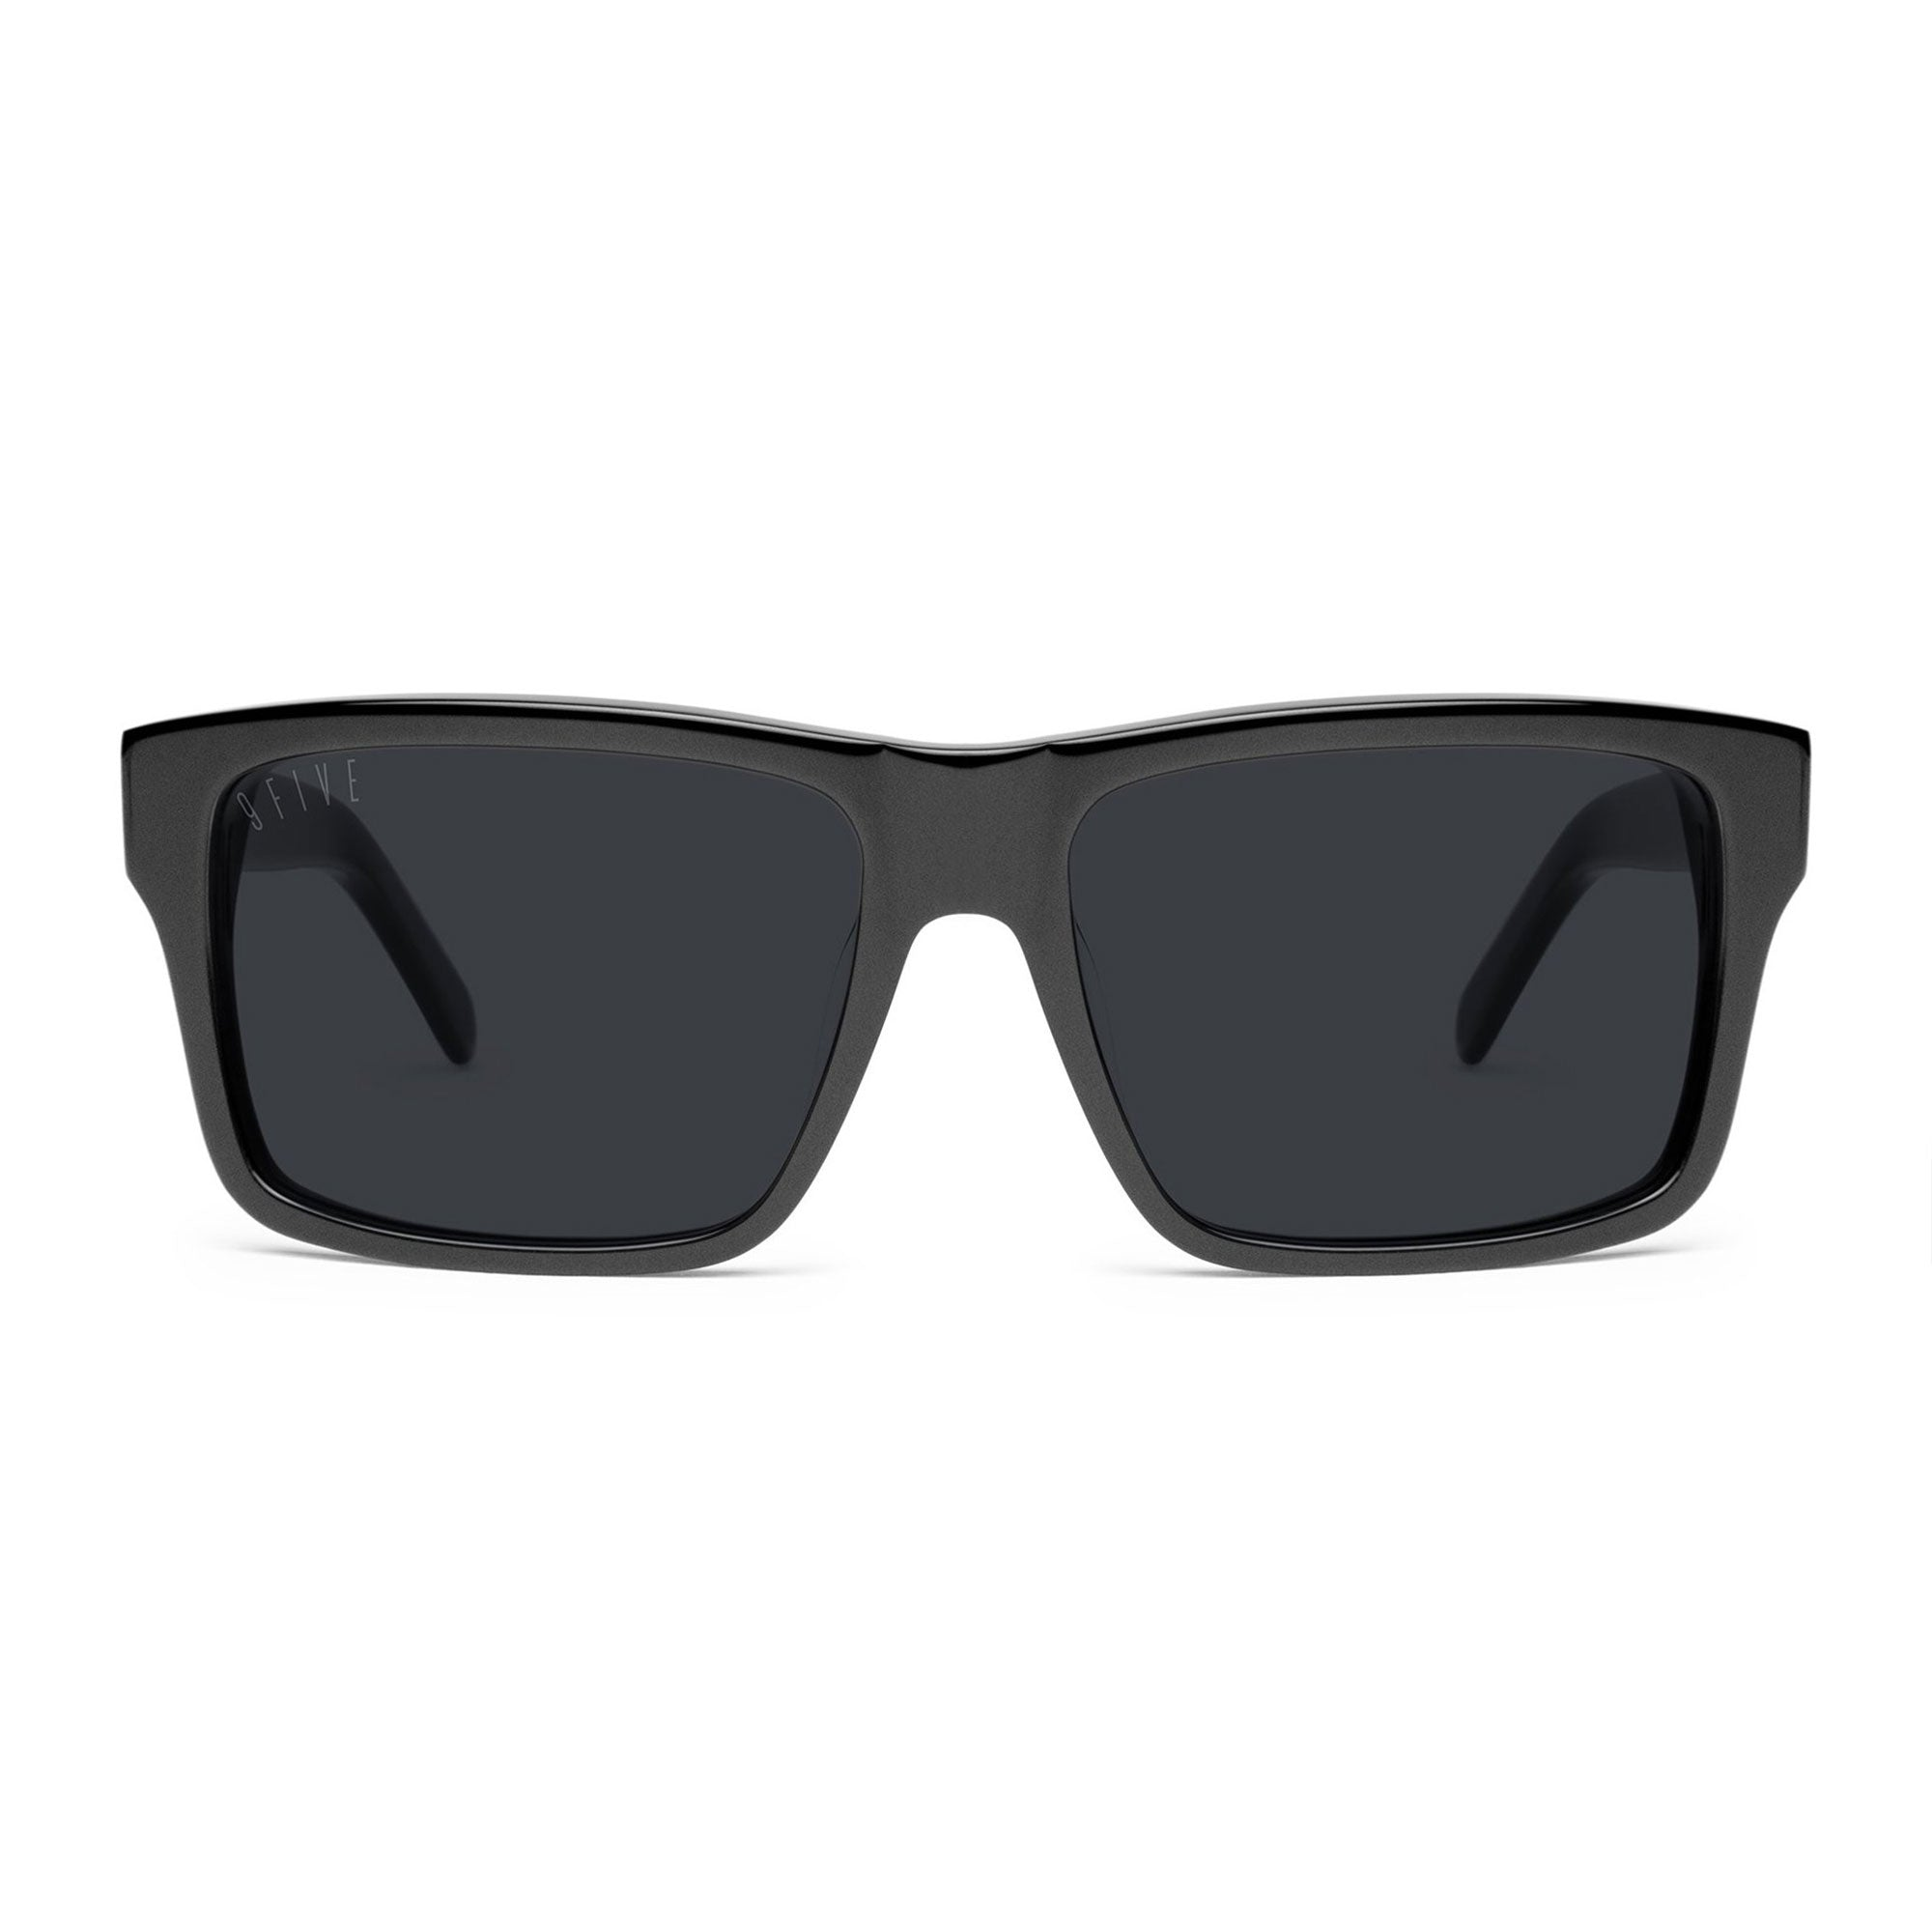 9FIVE CAPS SUNGLASSES - MATTE BLACK